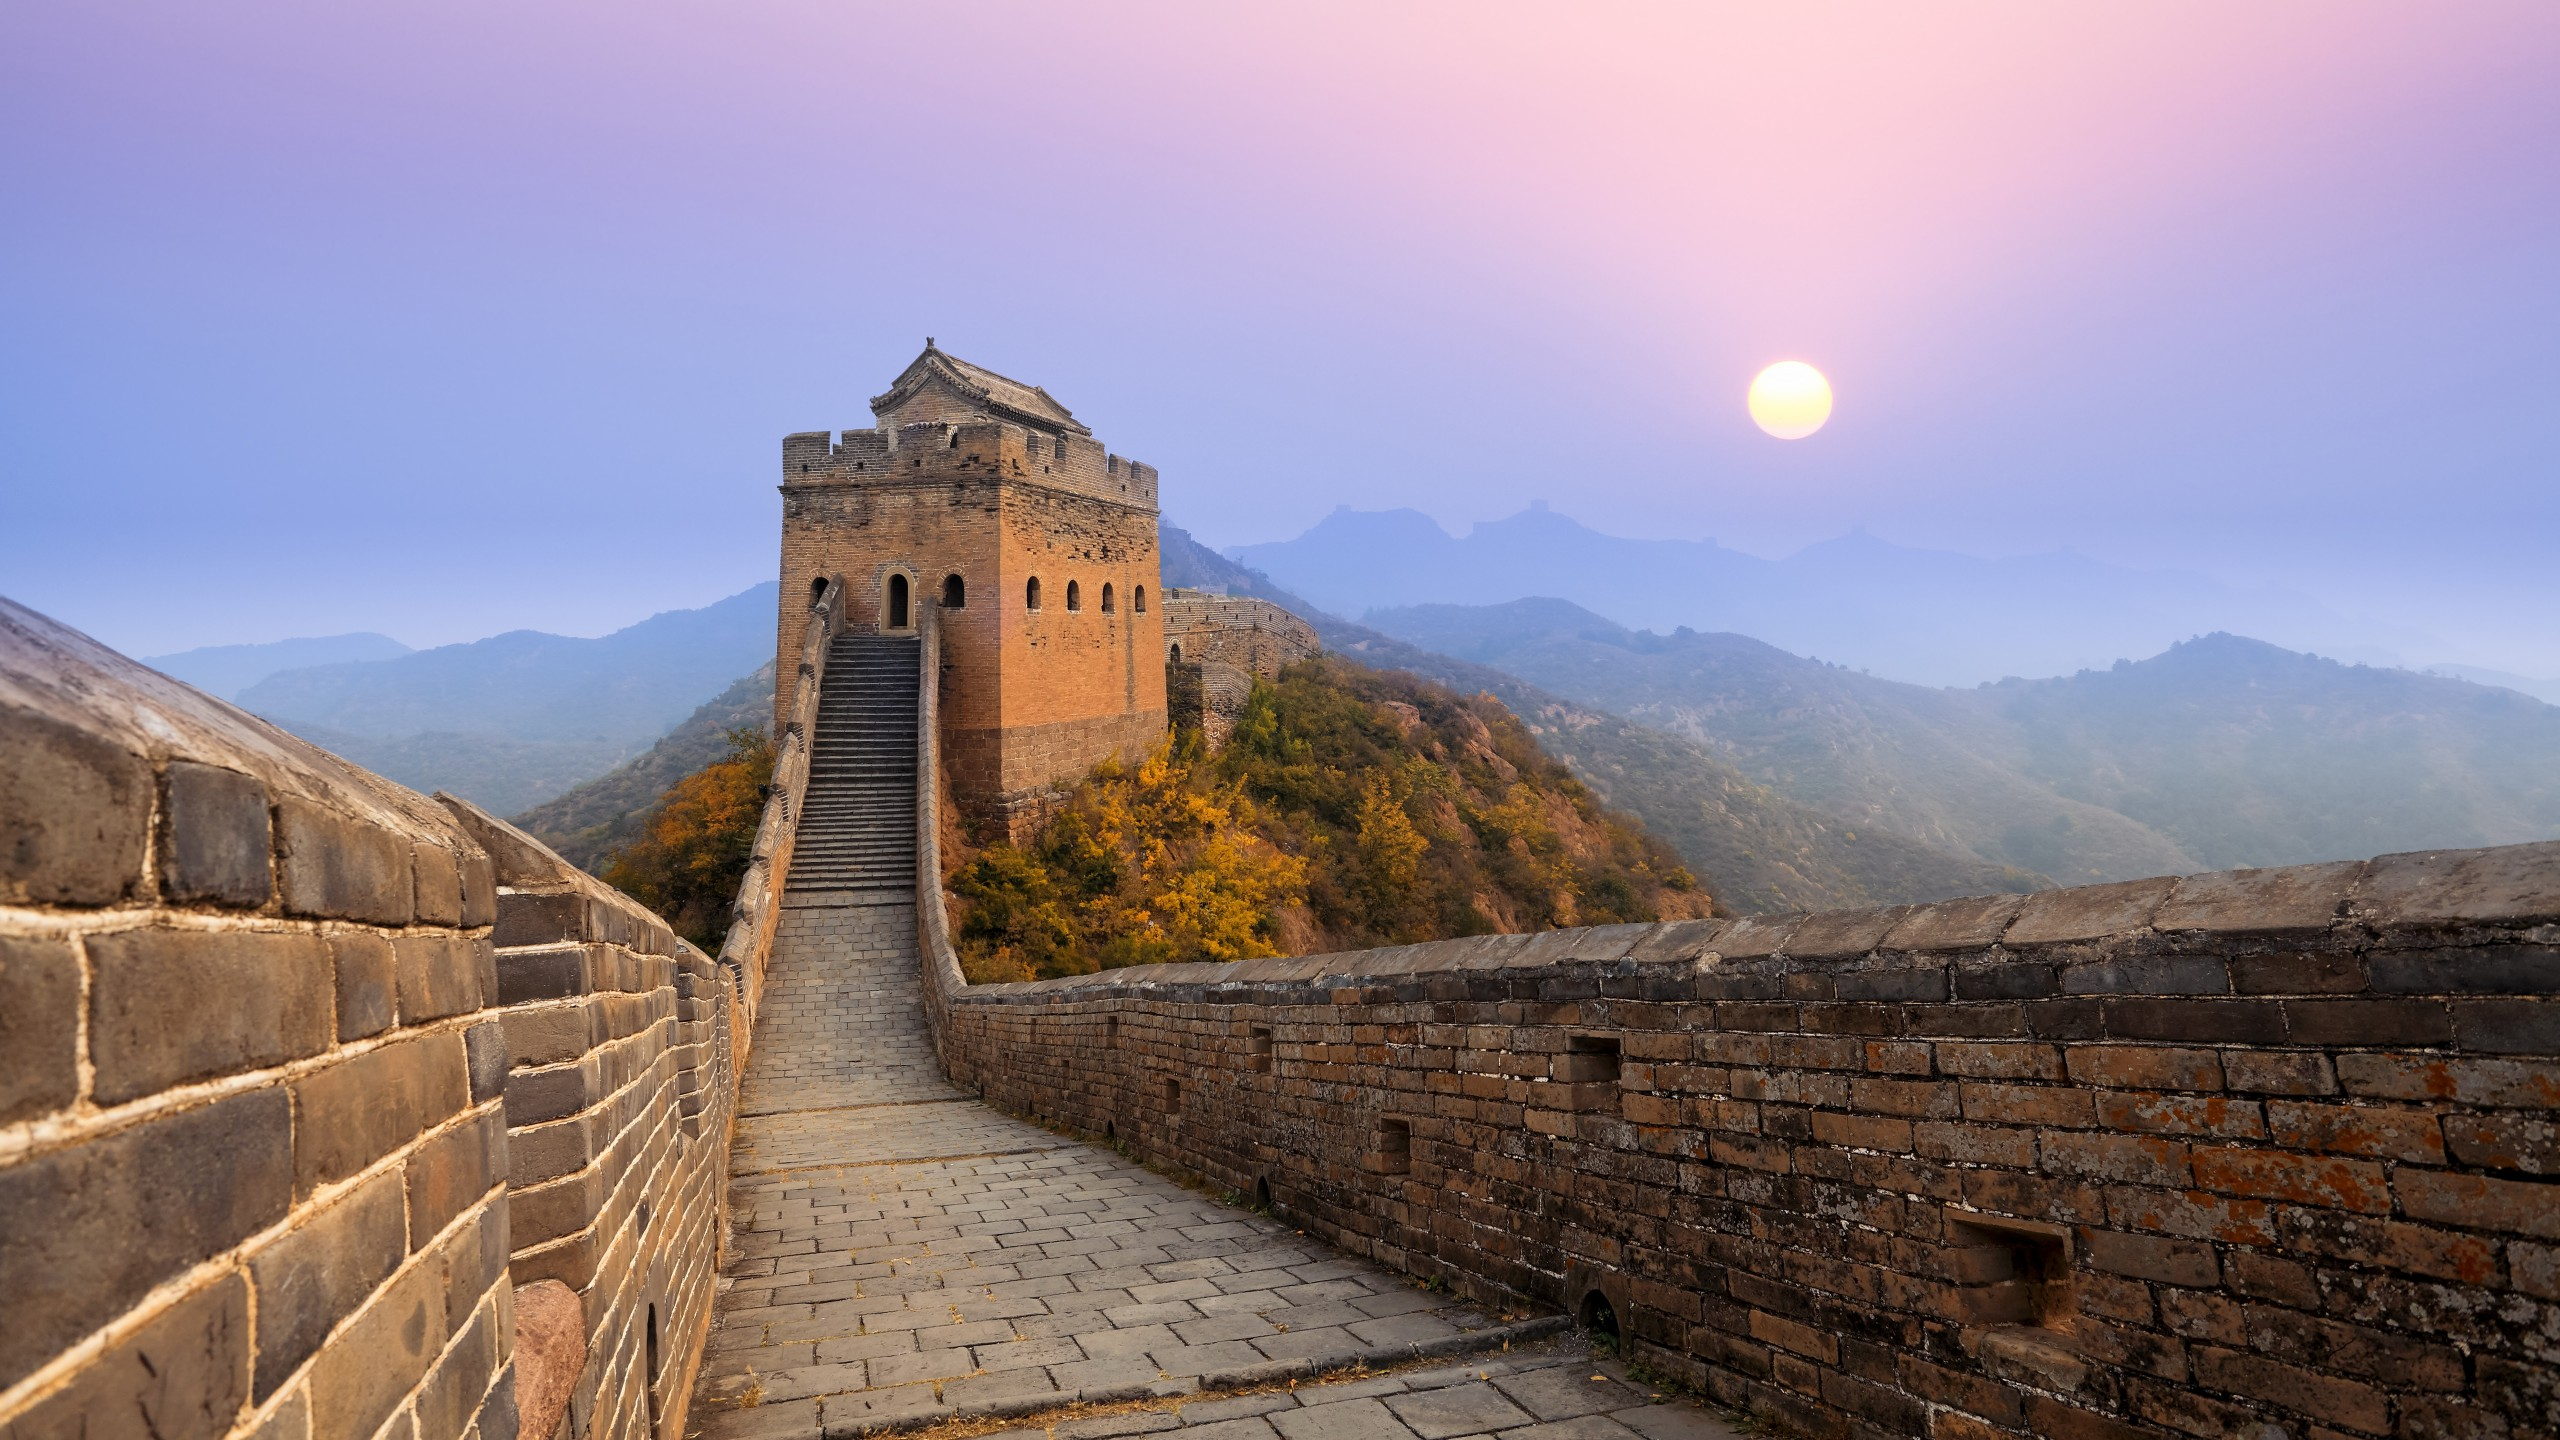 Cute Iphone 5s Wallpaper Great Wall Of China Sunrise Wallpapers Hd Wallpapers